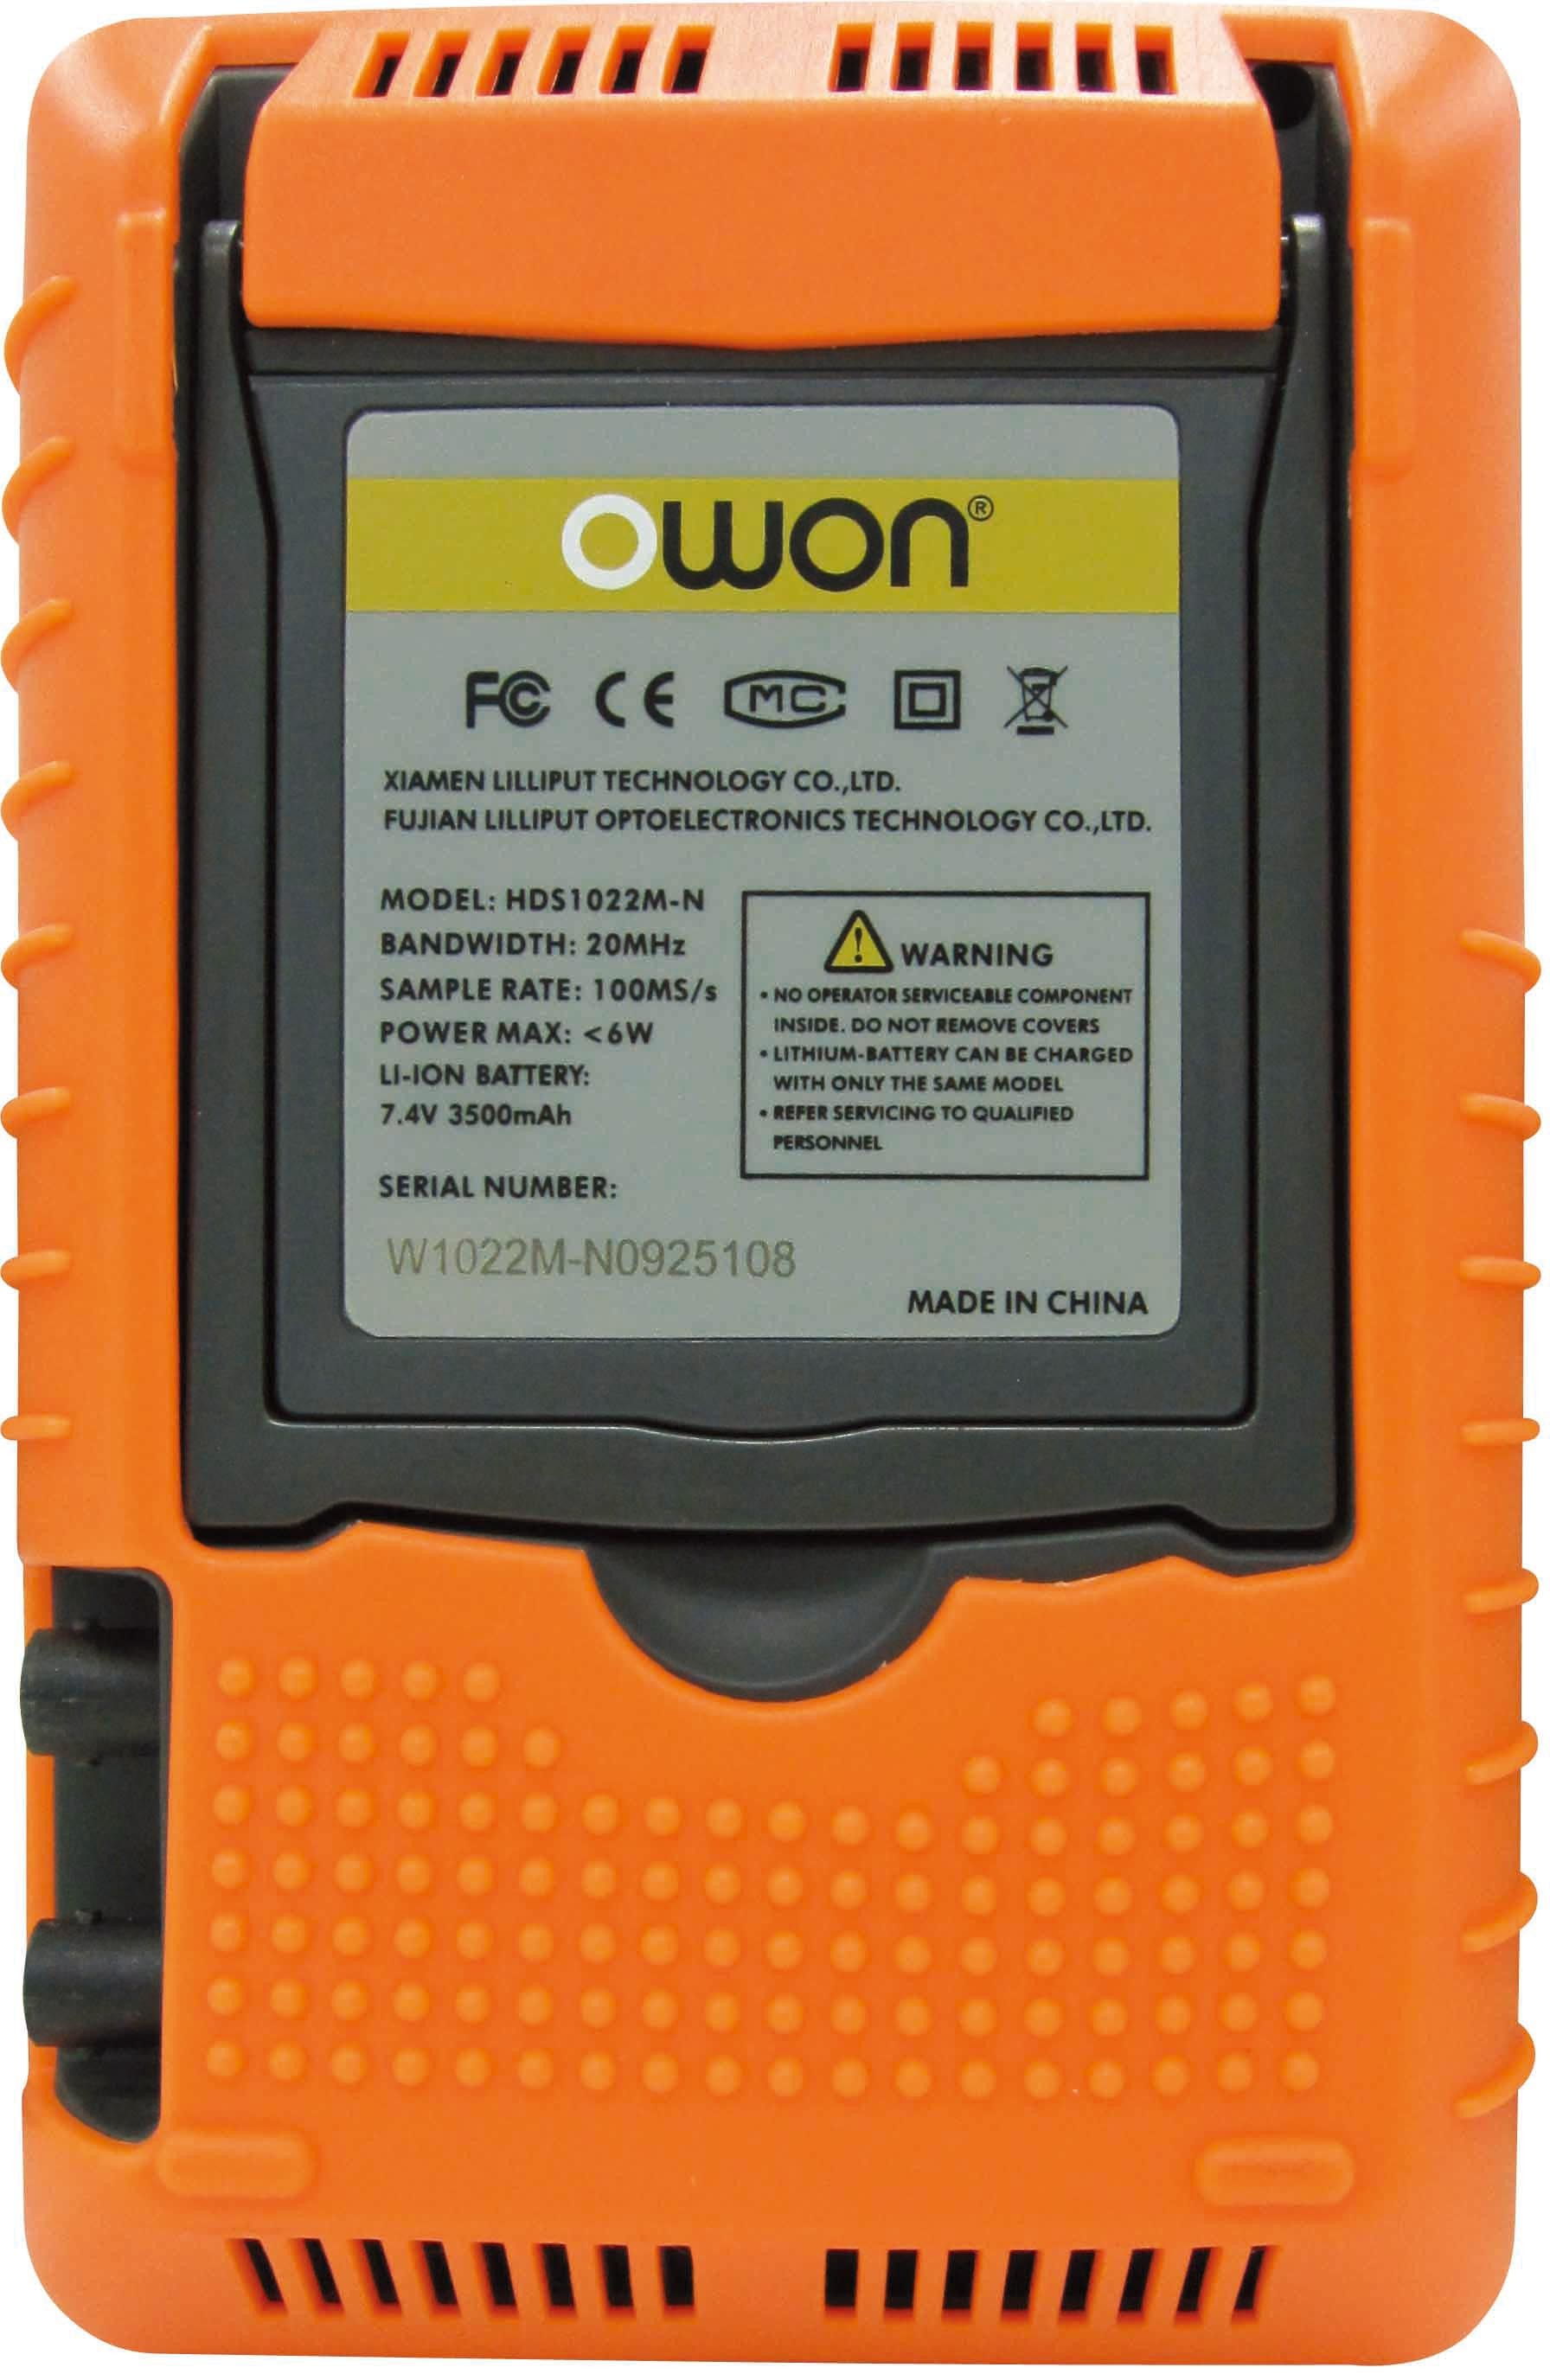 OWON 100MHz Dual-Channel Handheld Digital Oscilloscope (HDS3102M-N)